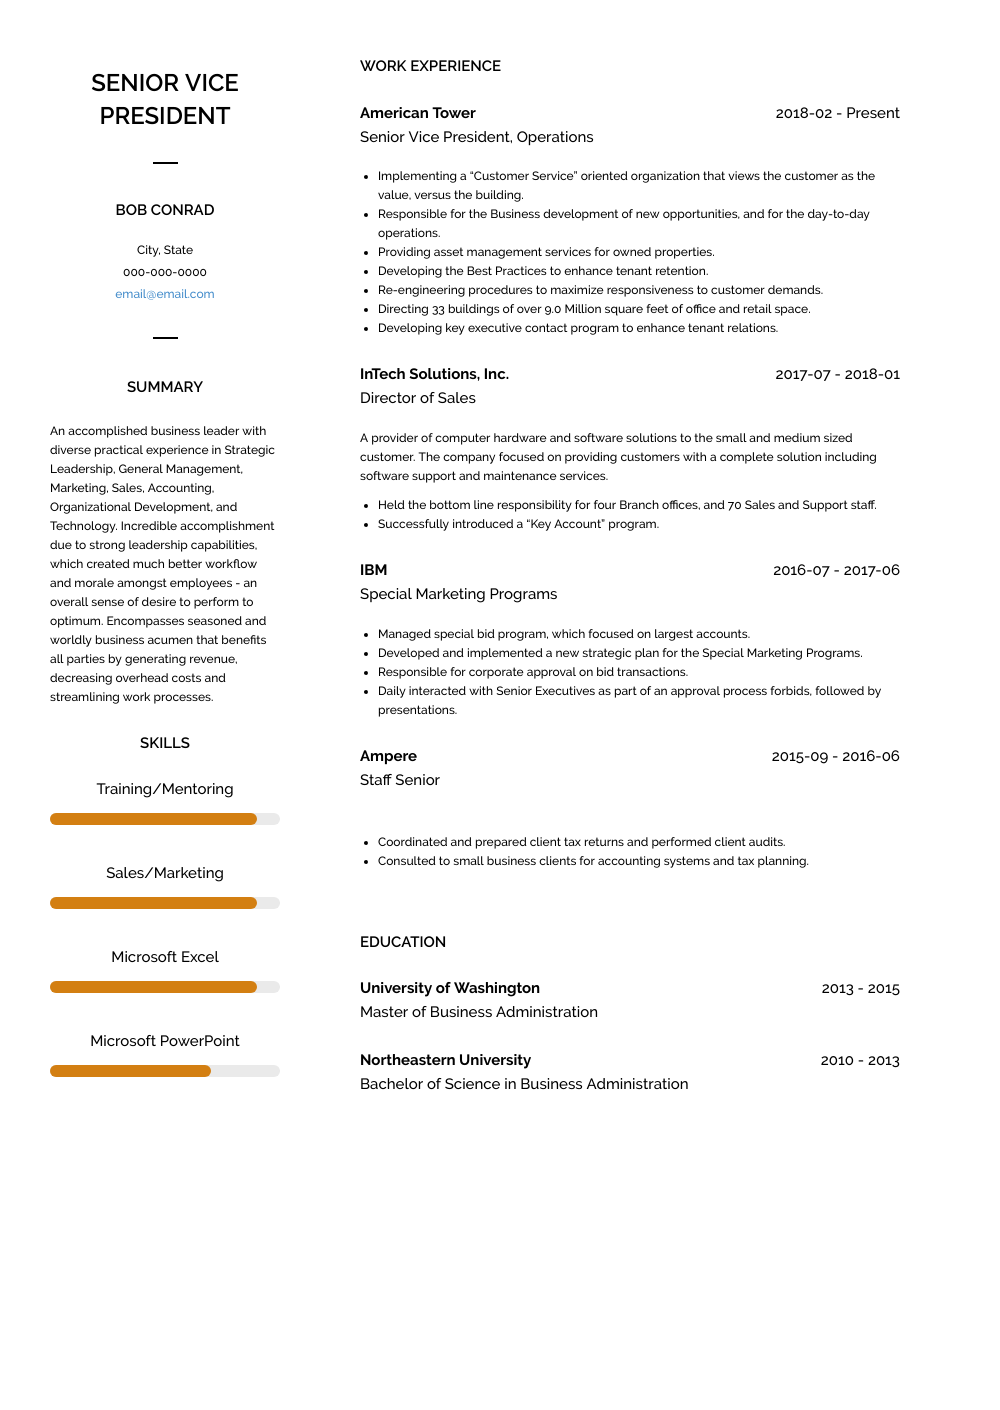 Senior Vice President Resume Samples And Templates Visualcv